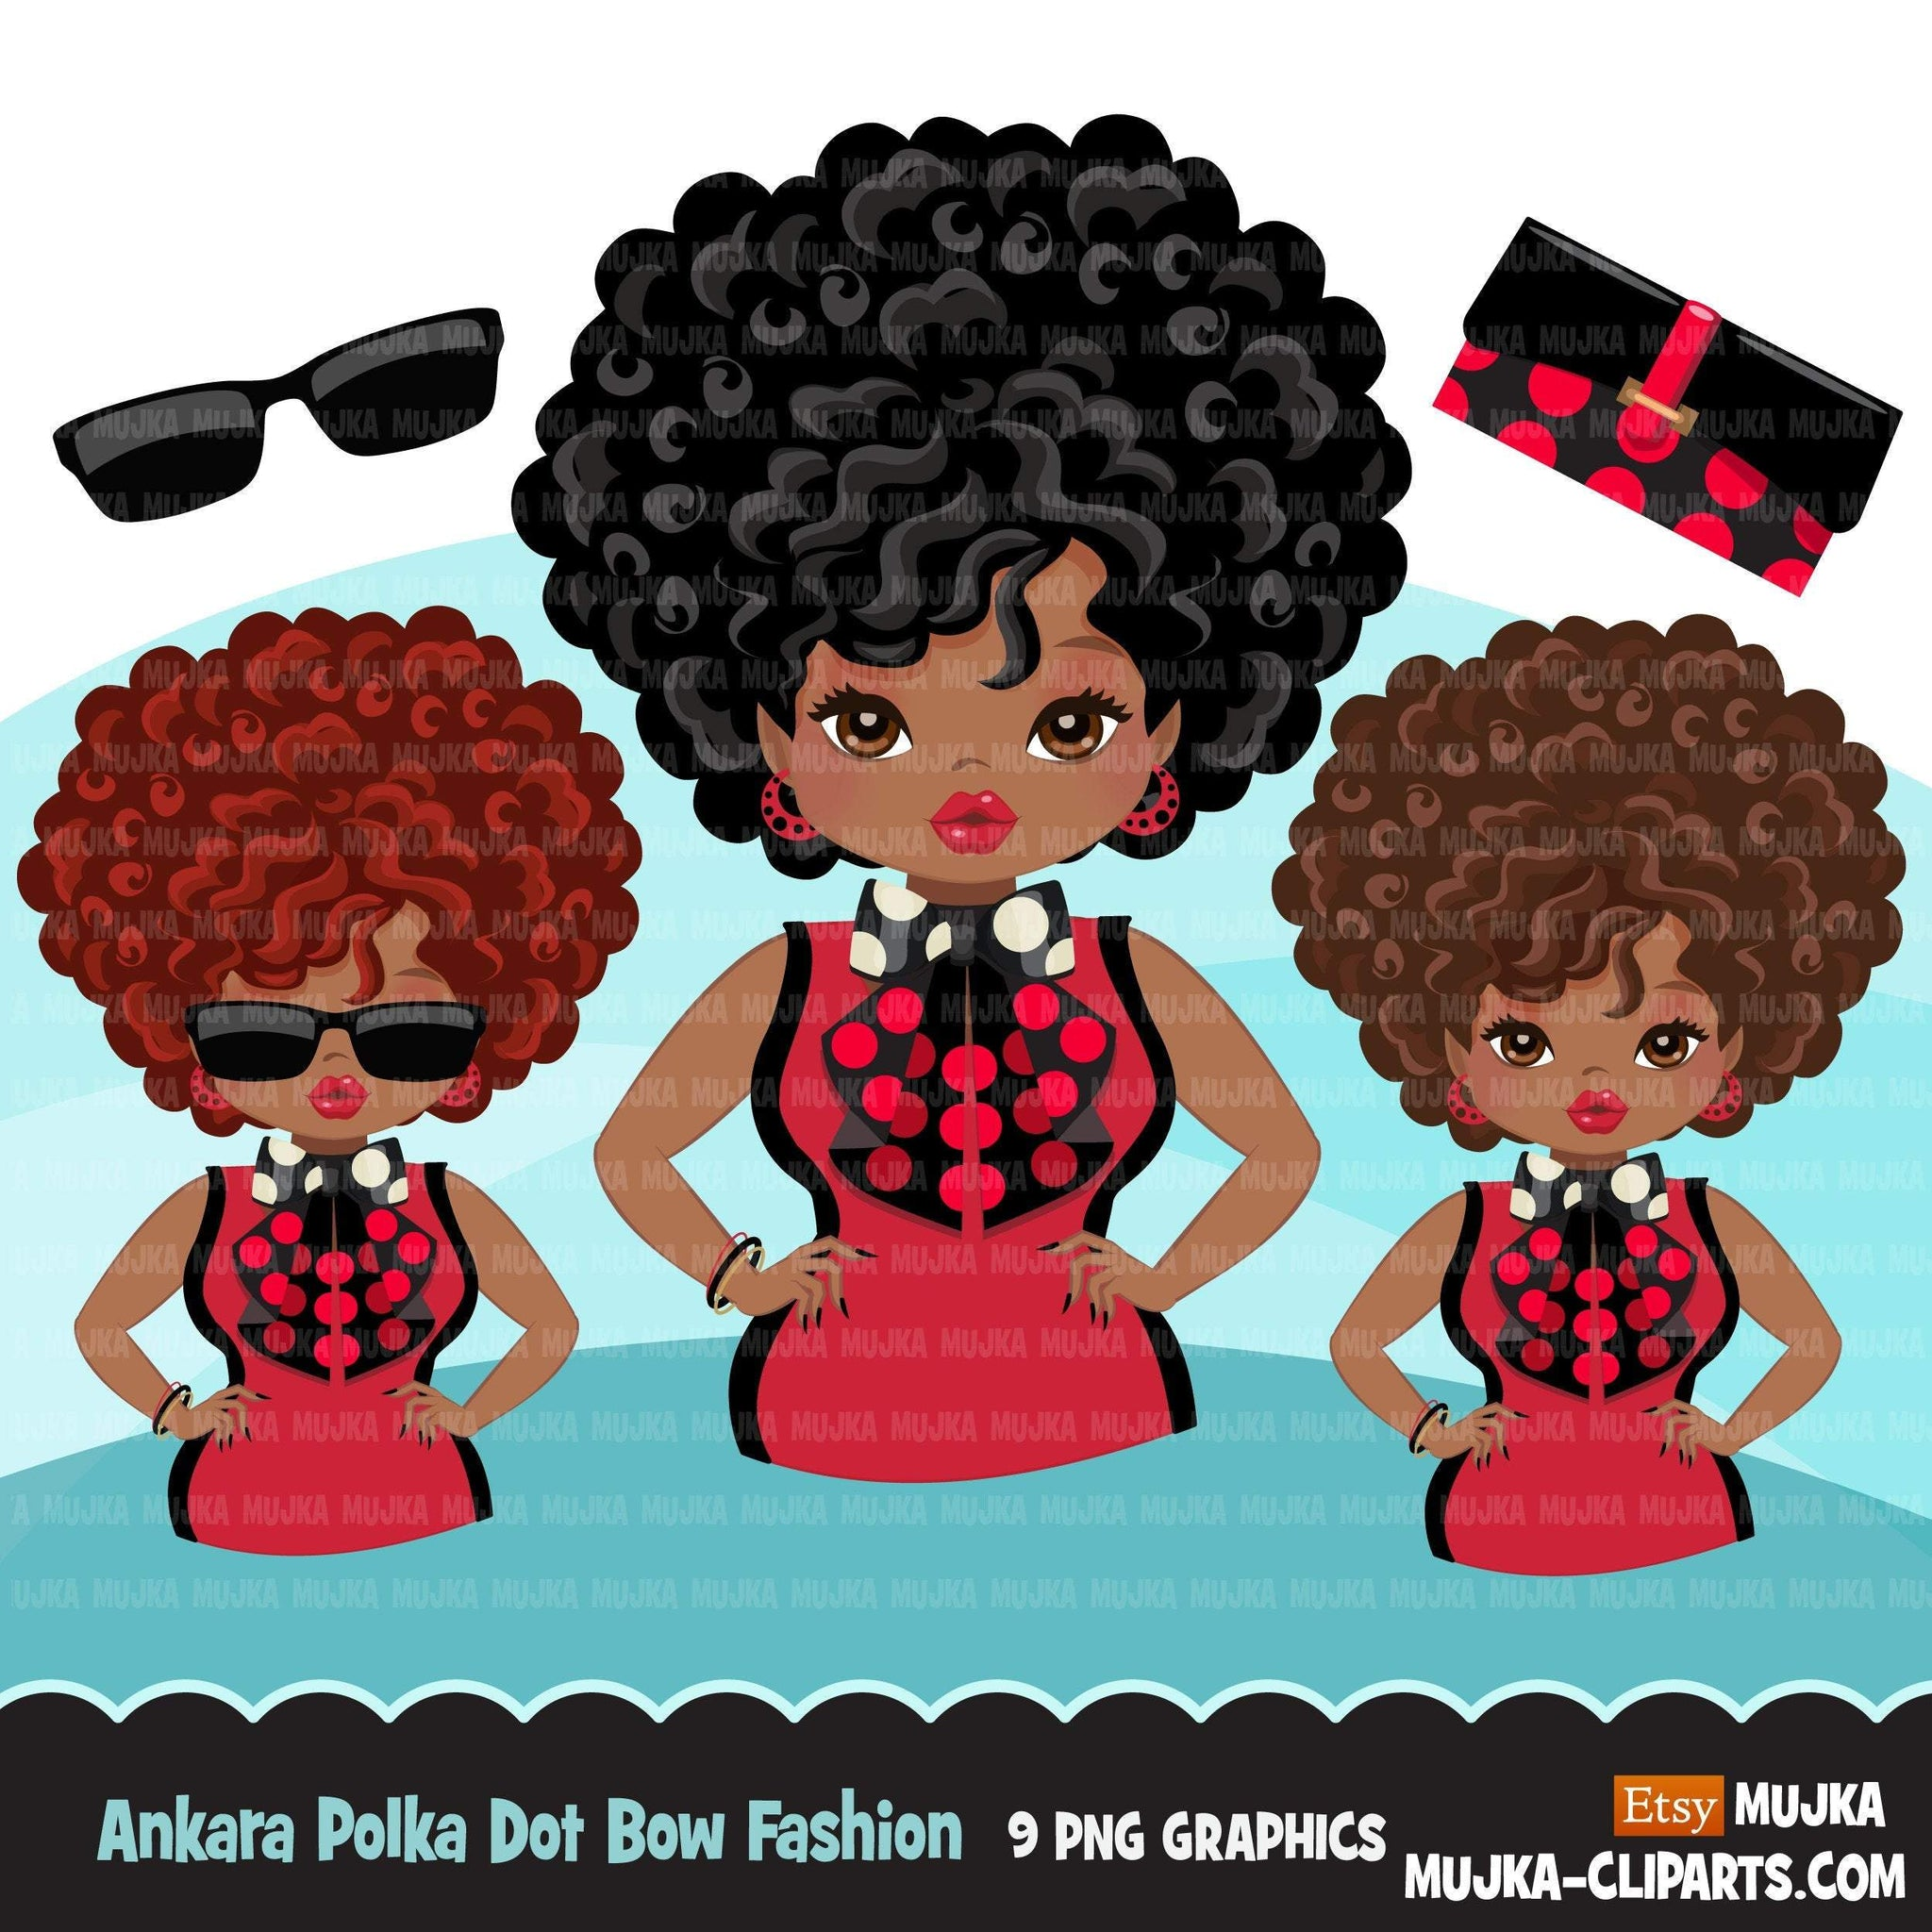 Black woman clipart avatar, Ankara polka dot print bow tie, fashion graphics shop logo boss afro girl clip art print and cut PNG